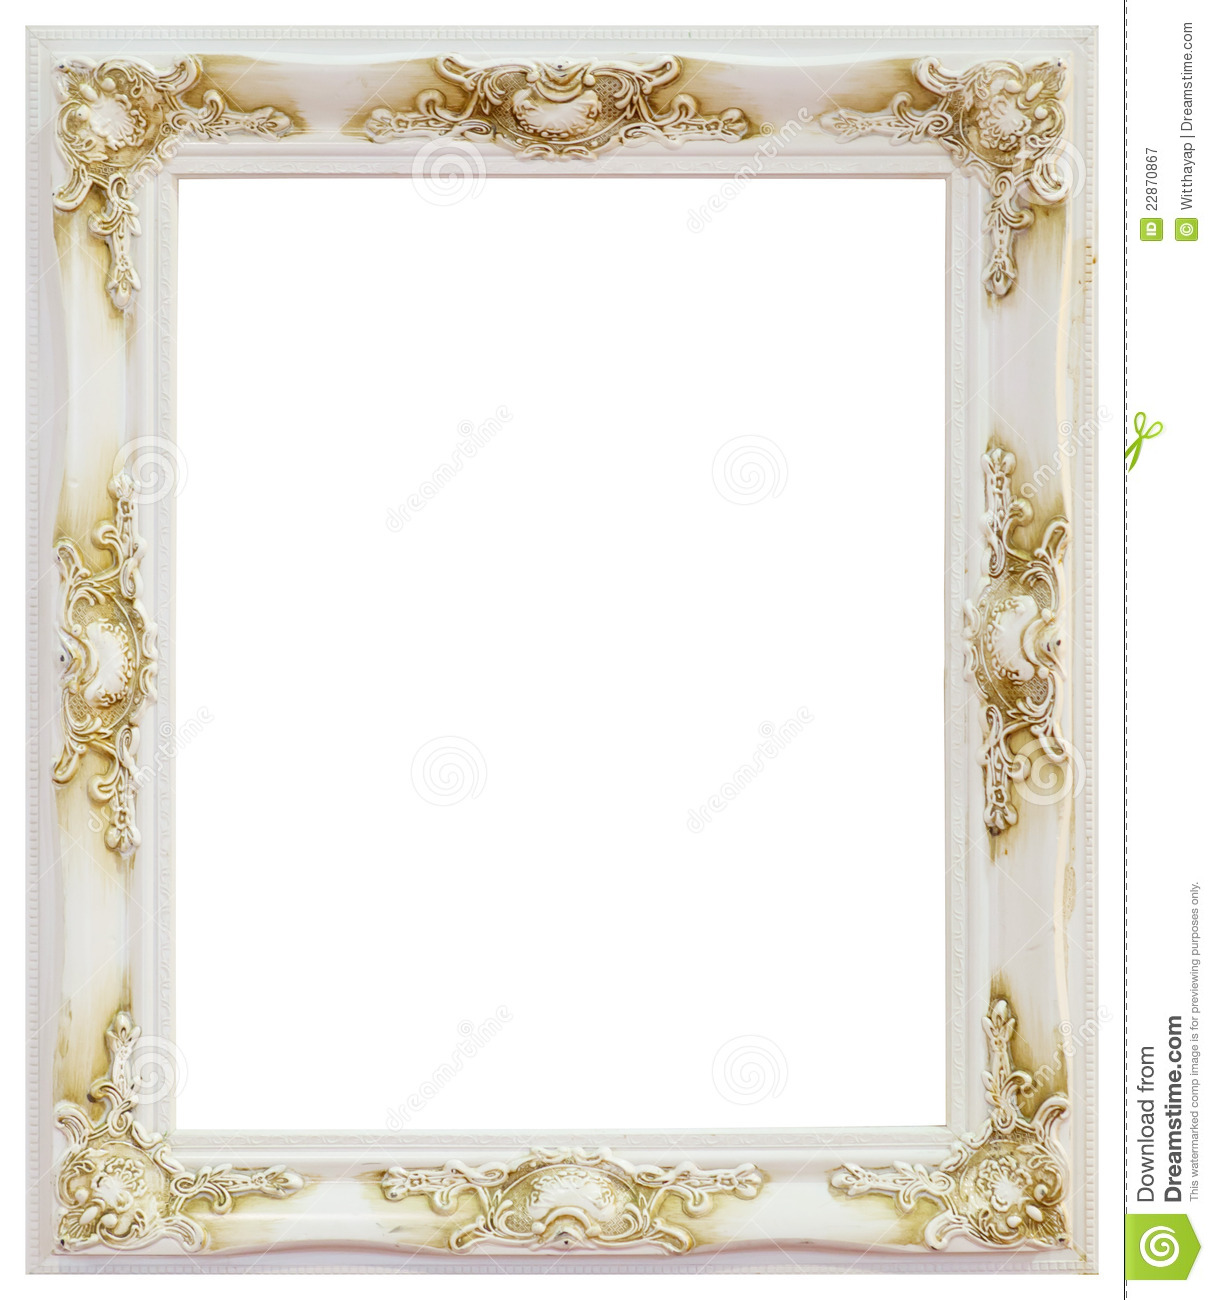 White Frame Royalty Free Stock Photography - Image: 22870867